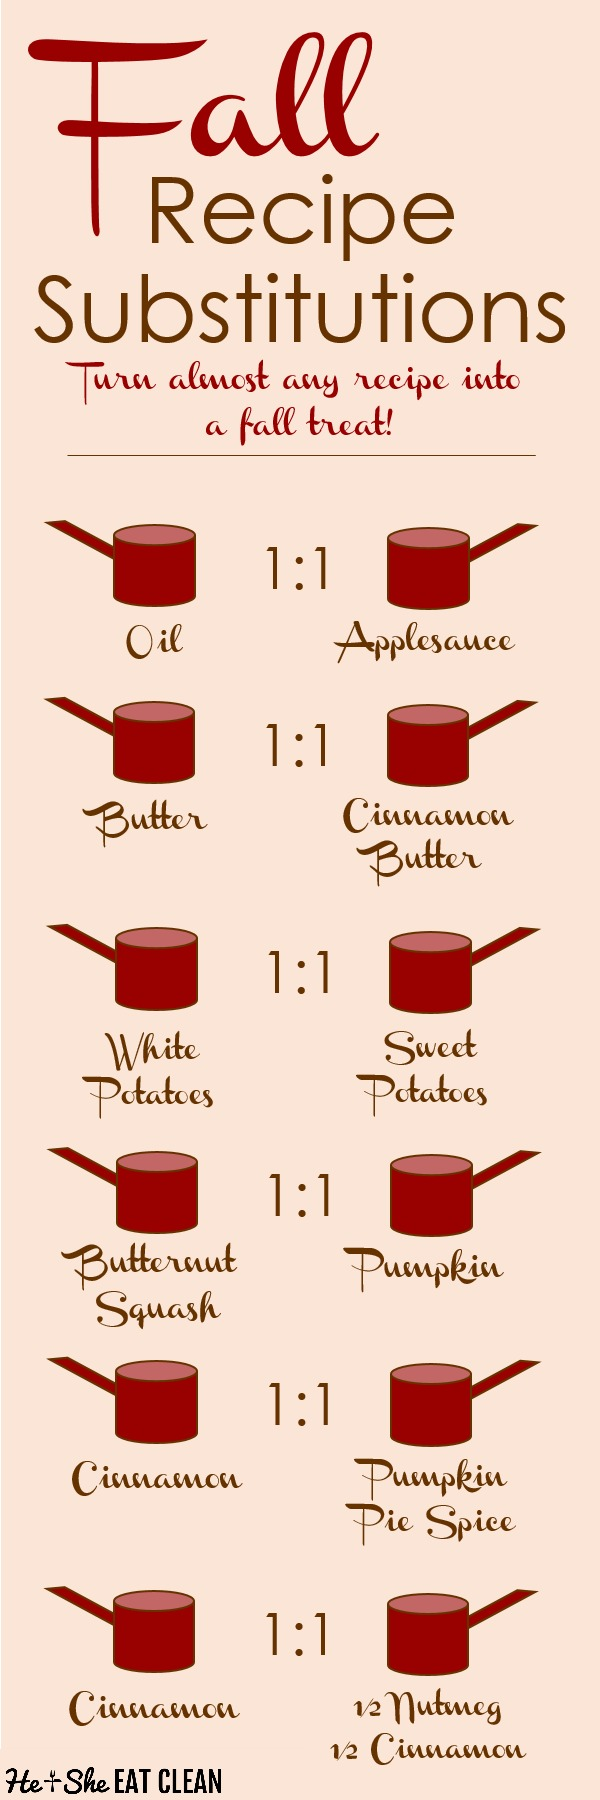 fall recipe substitutions